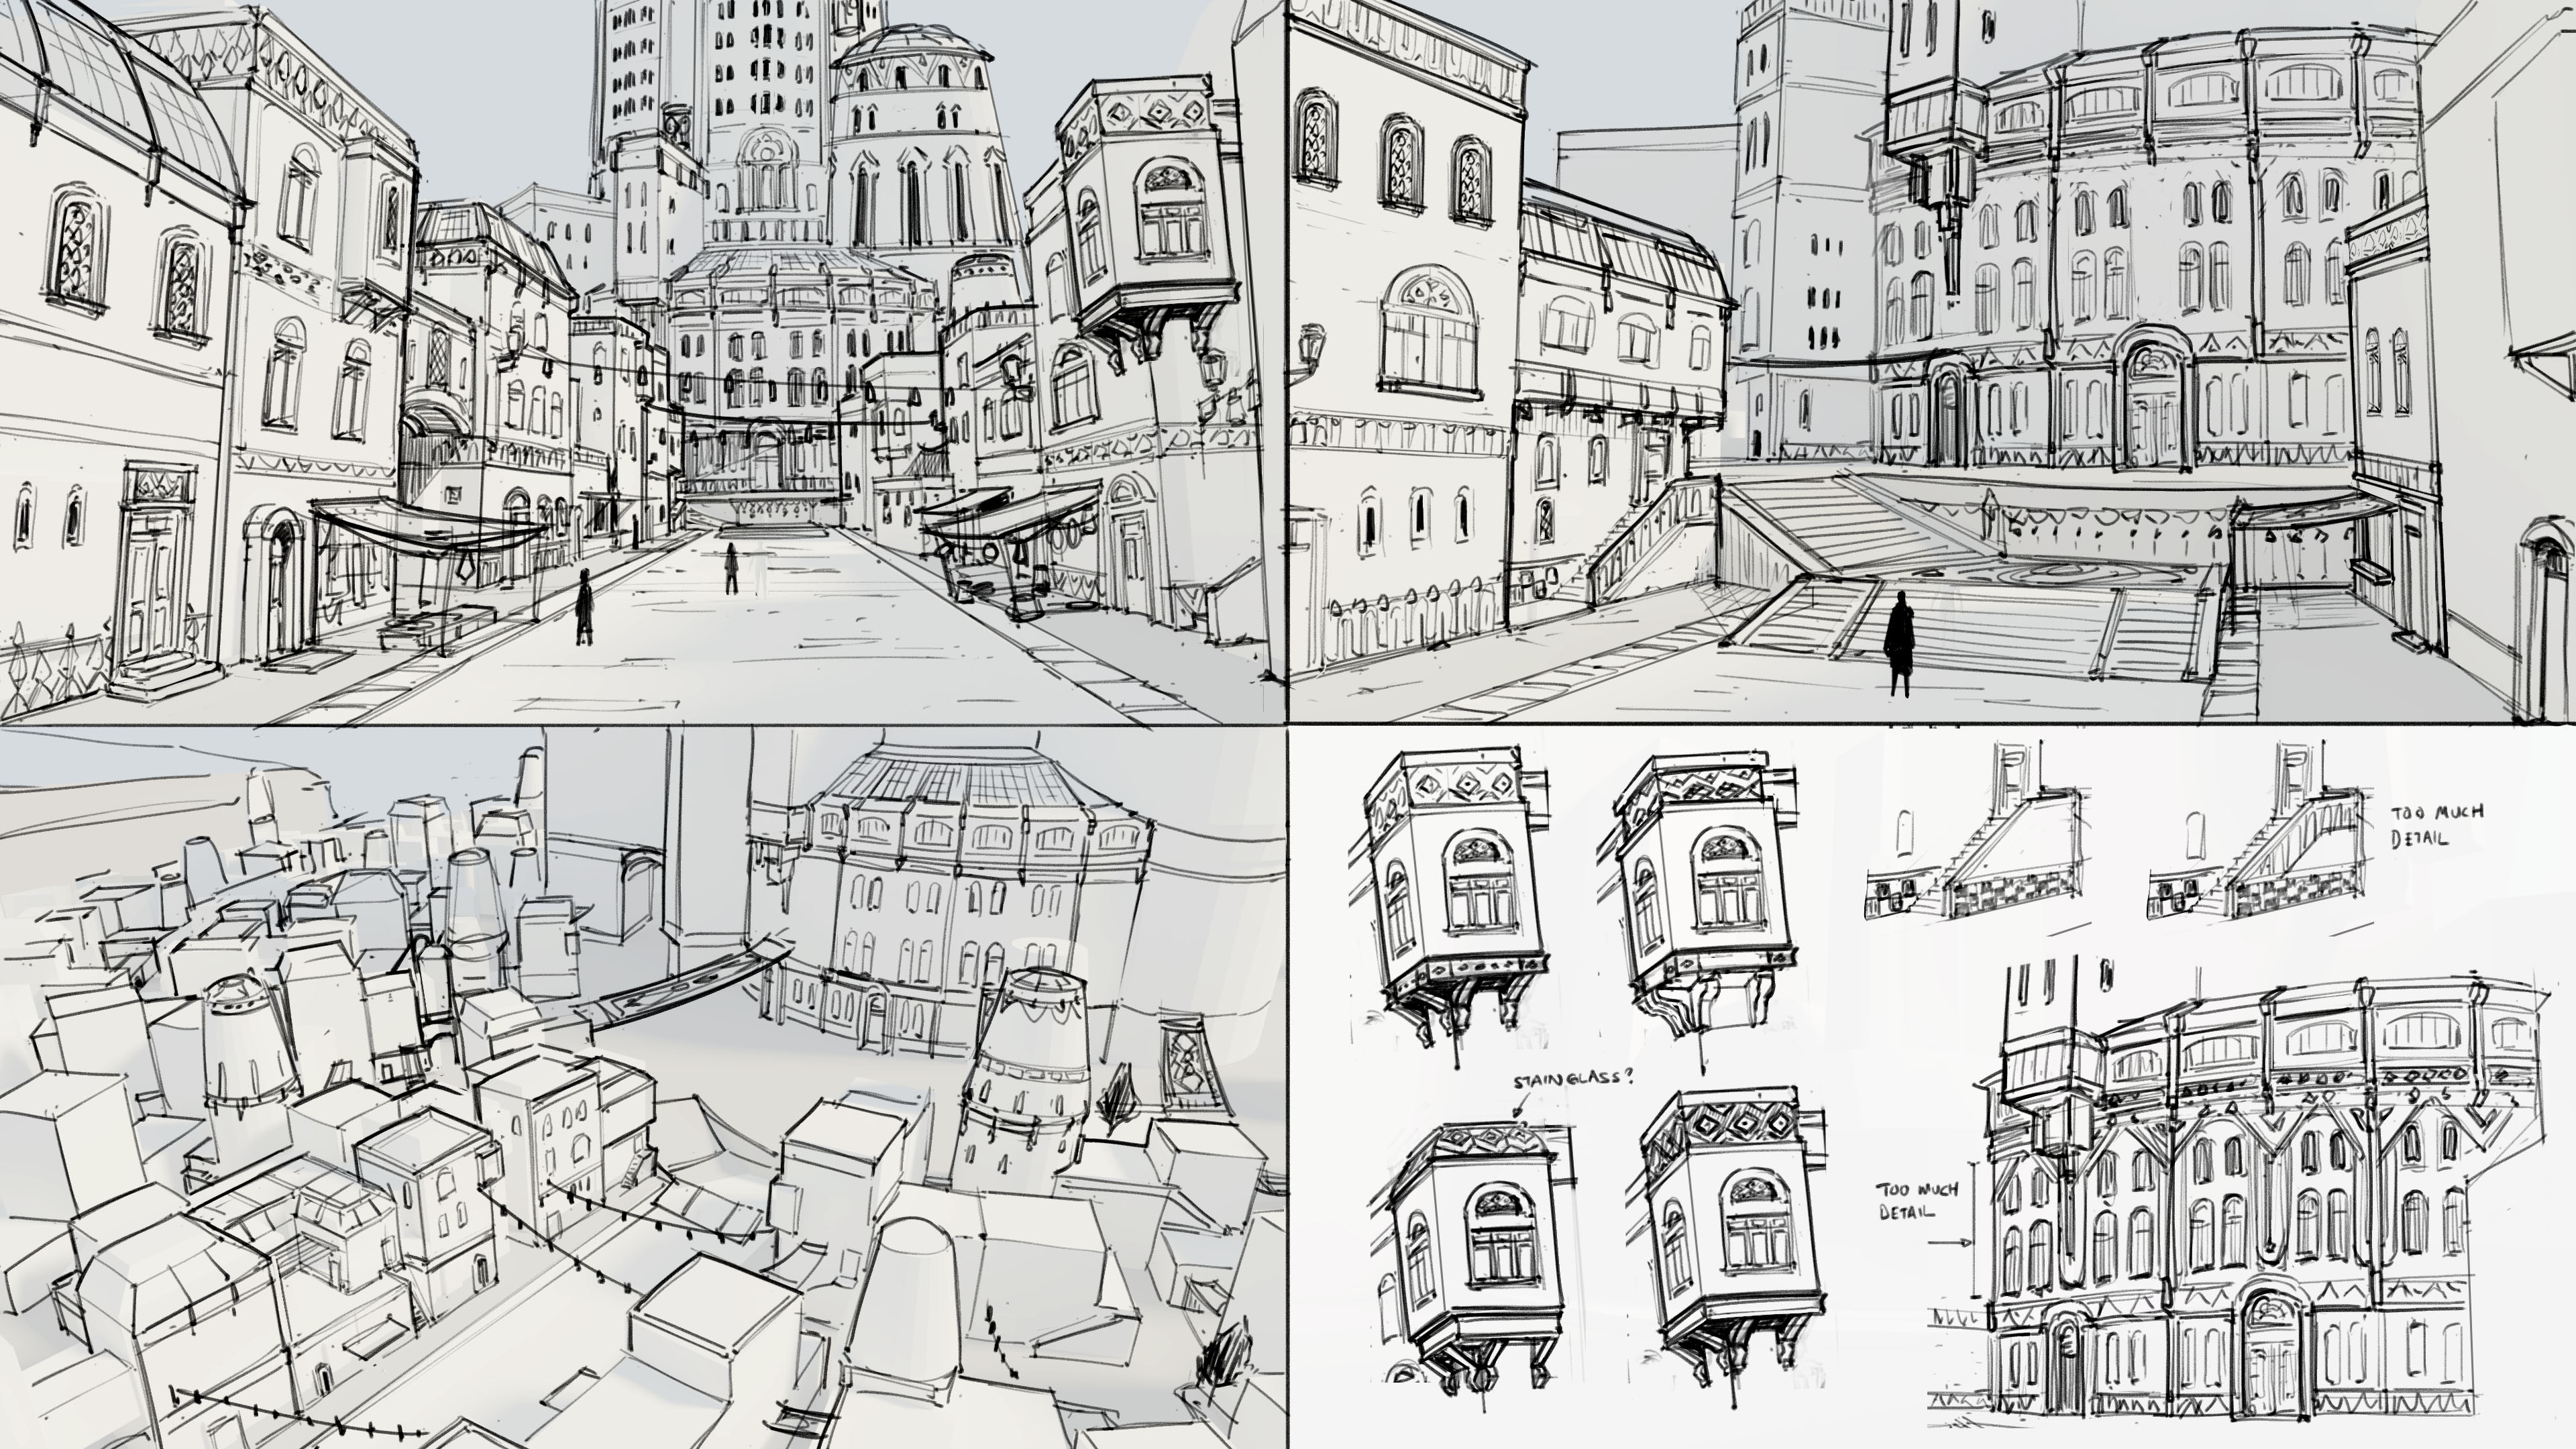 Design Sketches for the City Area